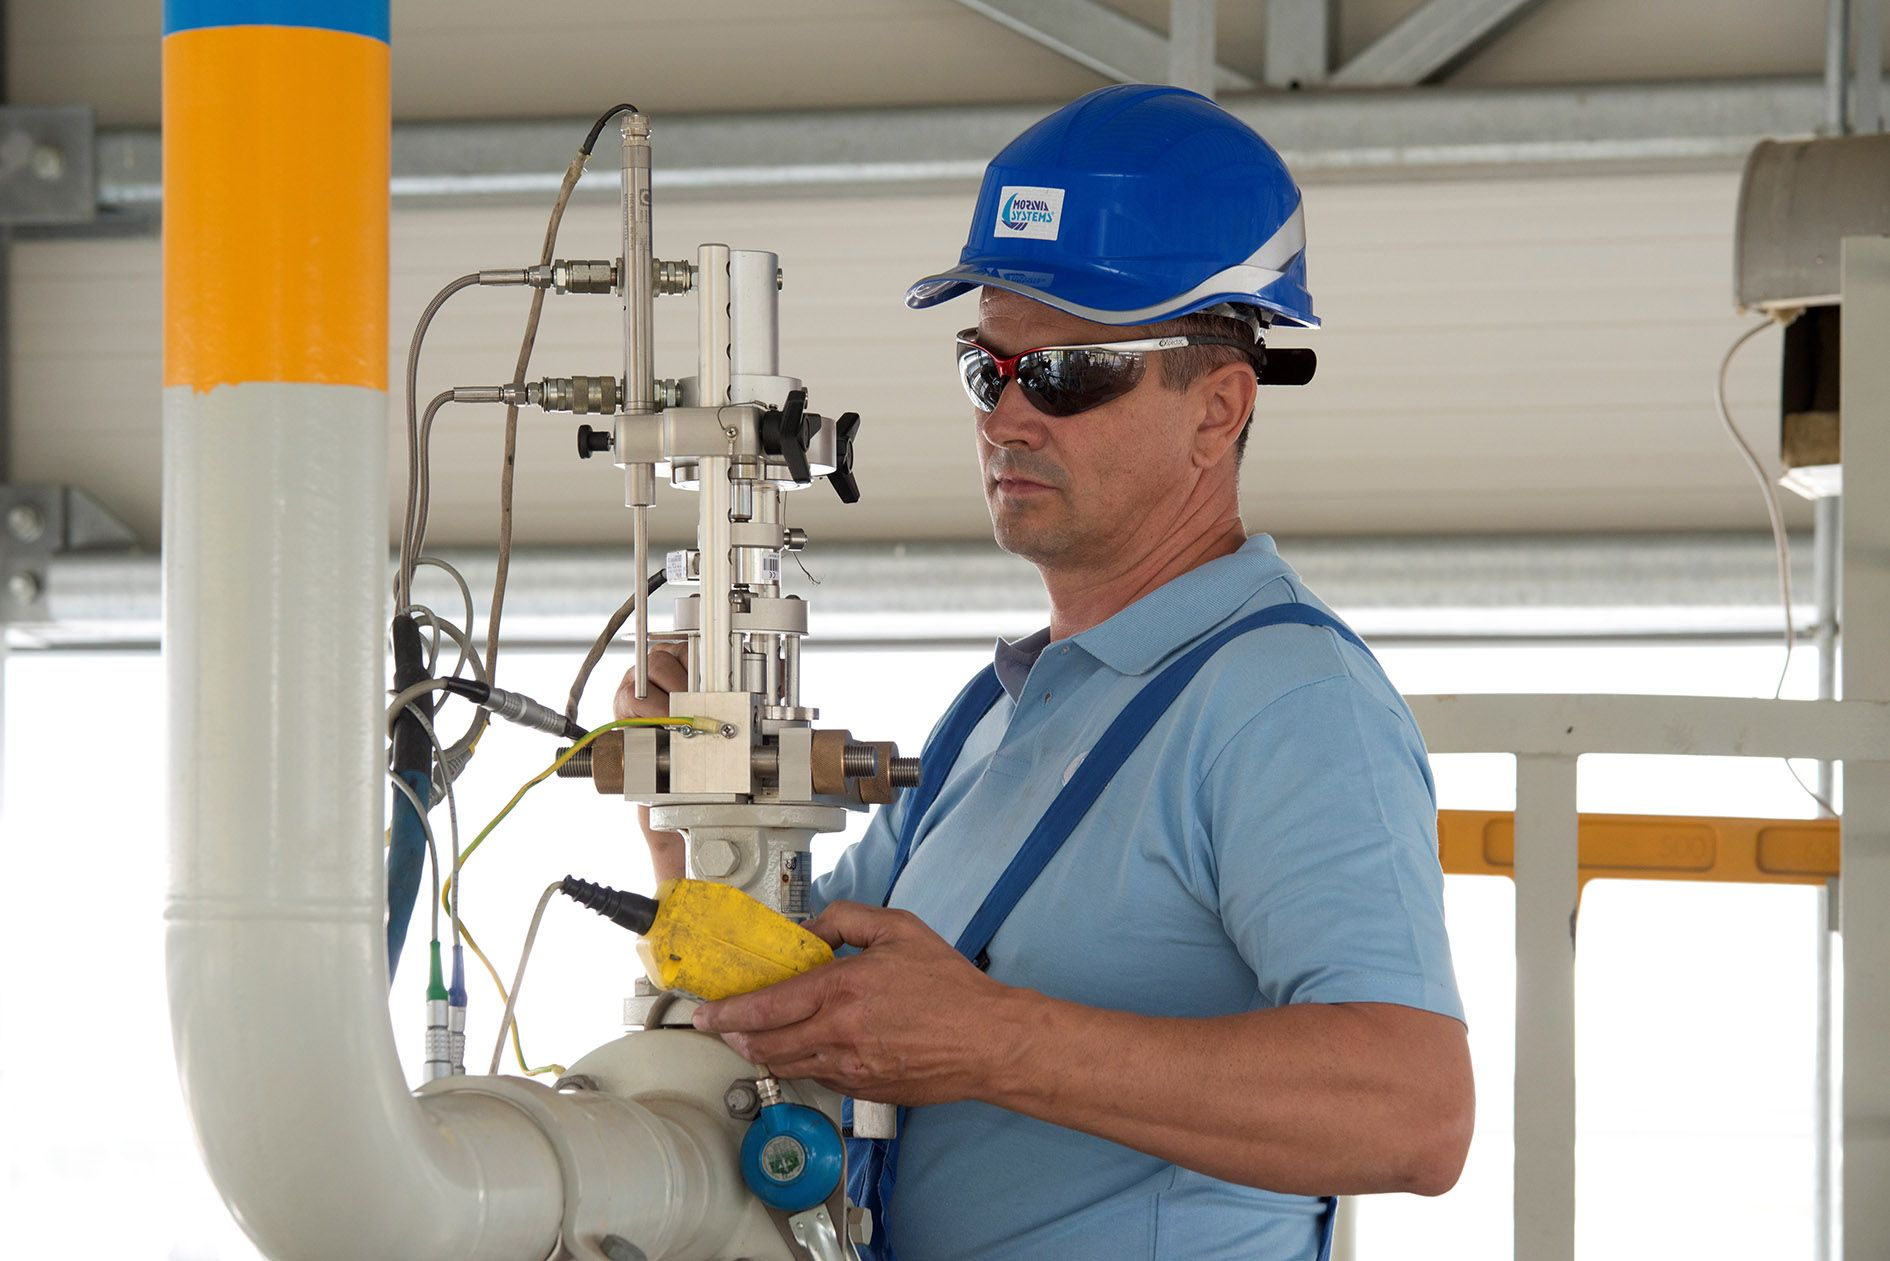 On-site & on-line Valve Testing - Industry 4.0 in Maintenance